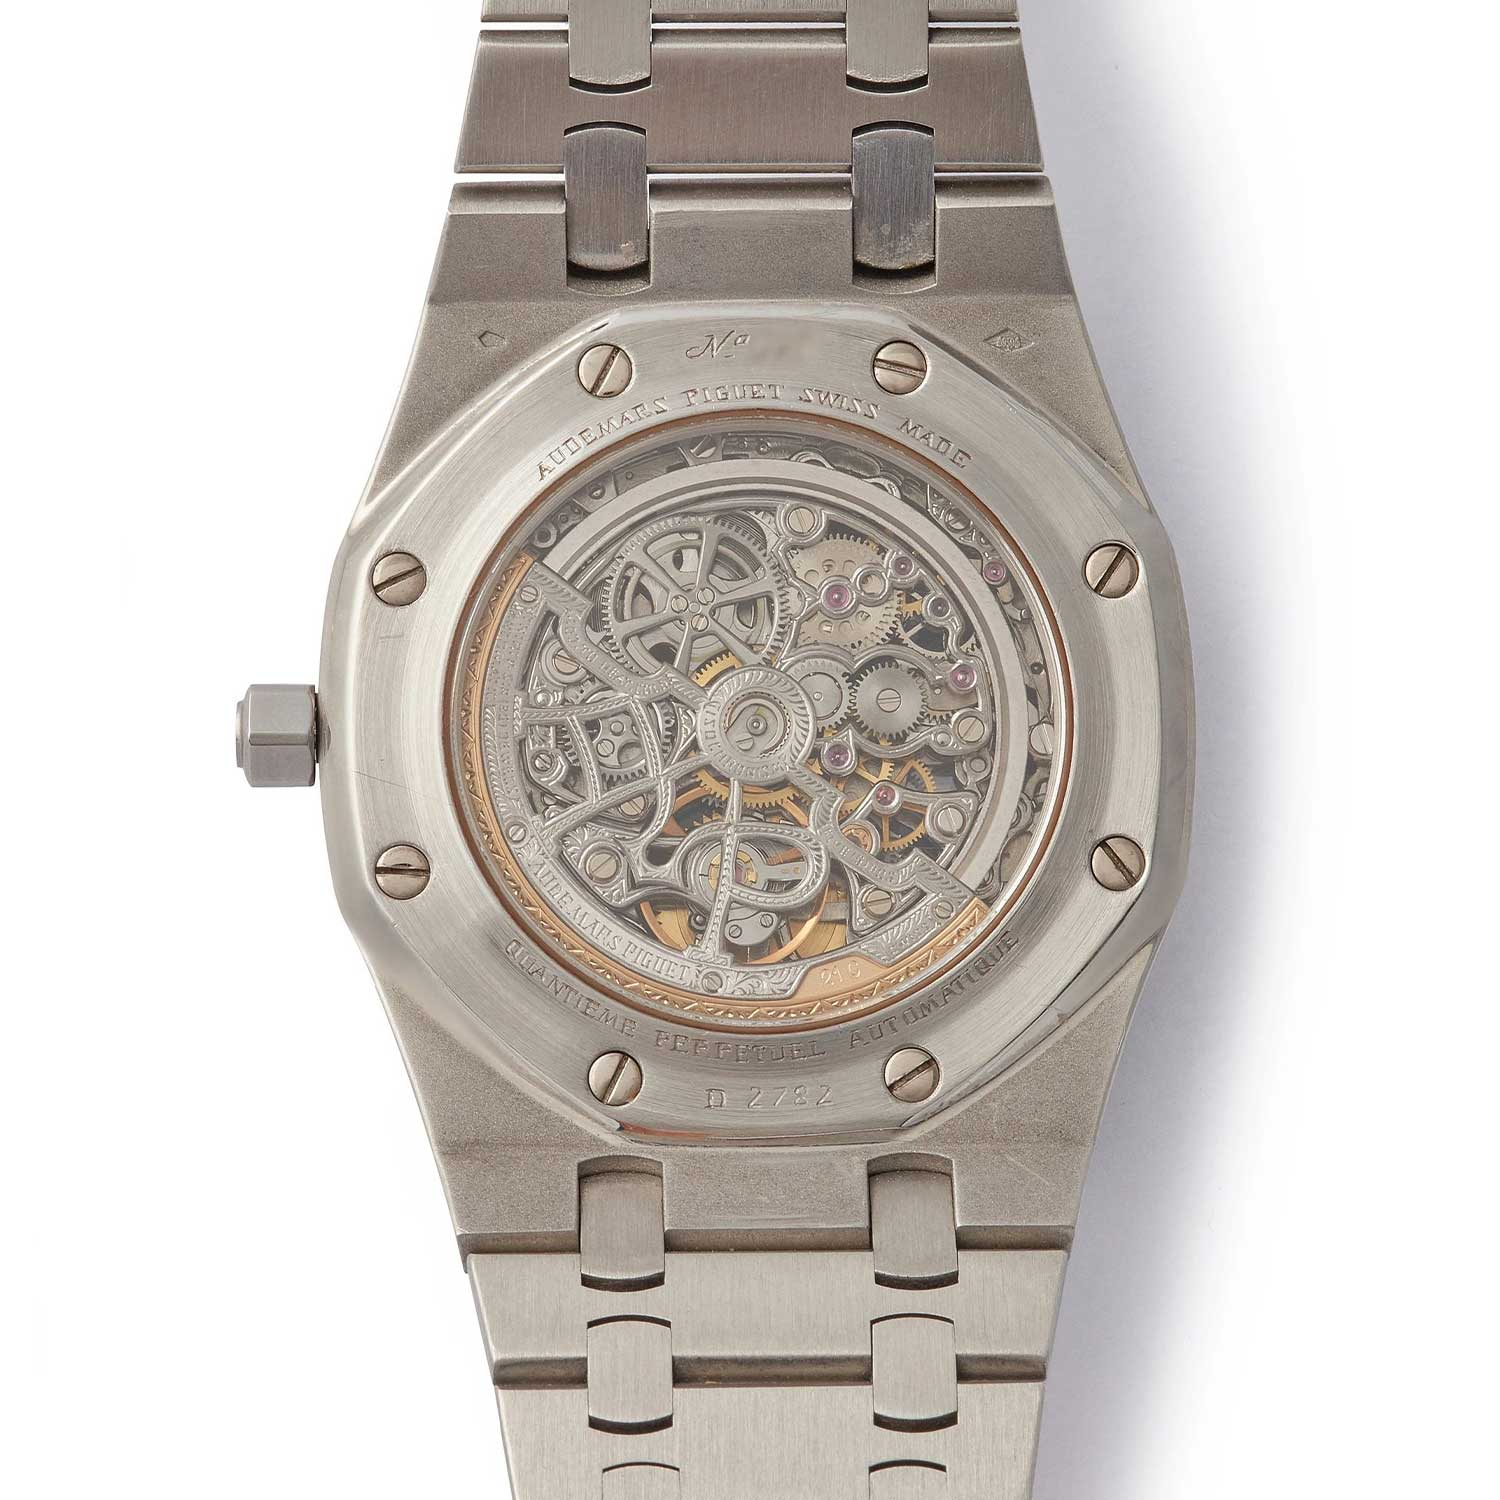 Display caseback of the 25636 with Skeleton Dial, that was listed on A Collected Man some time ago; this specific example was in platinum (Image: acollectedman.com)